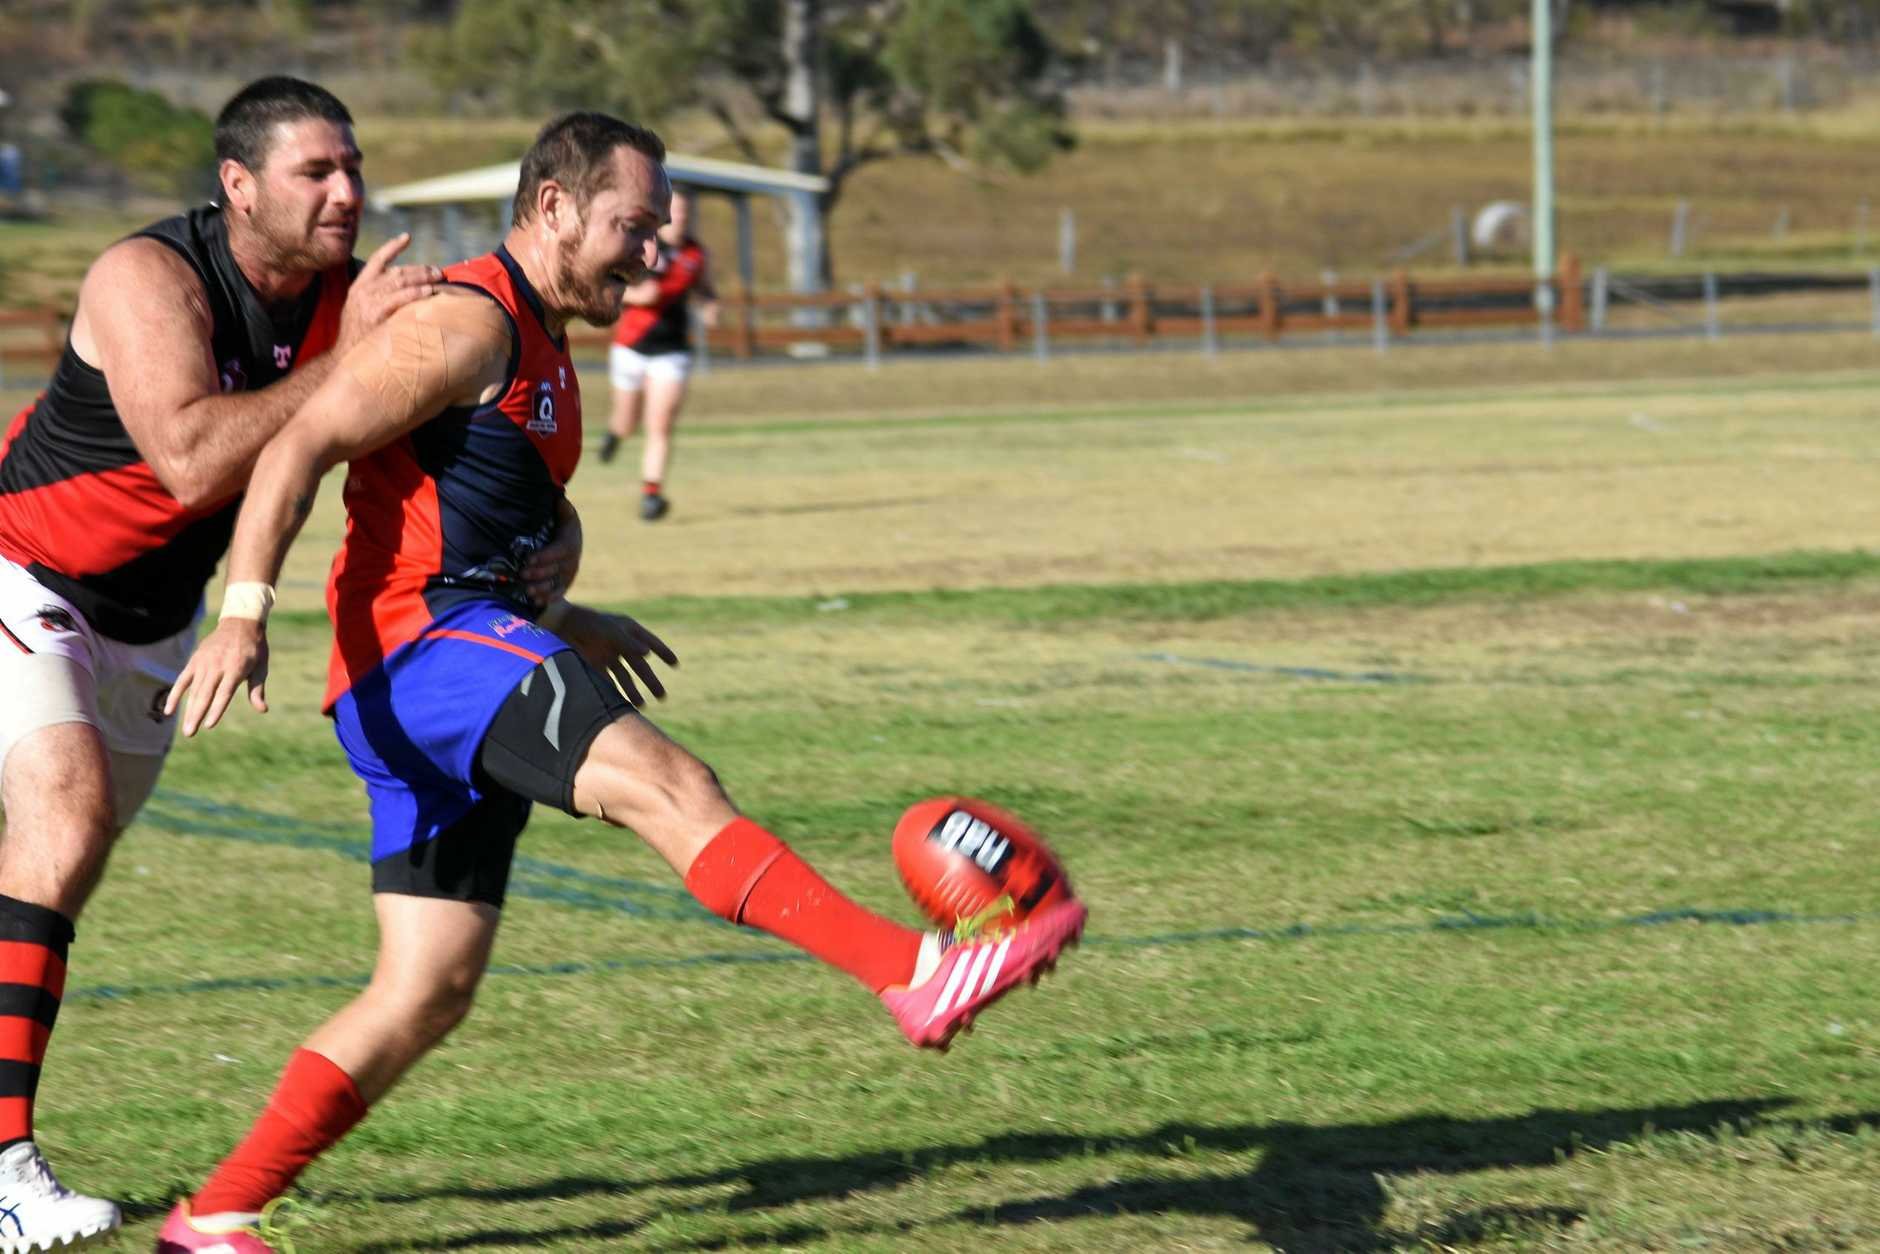 Warwick Redbacks AFC player Tyhe Clarkson (right) punts the ball in the team's match against the South Toowoomba Bombers.